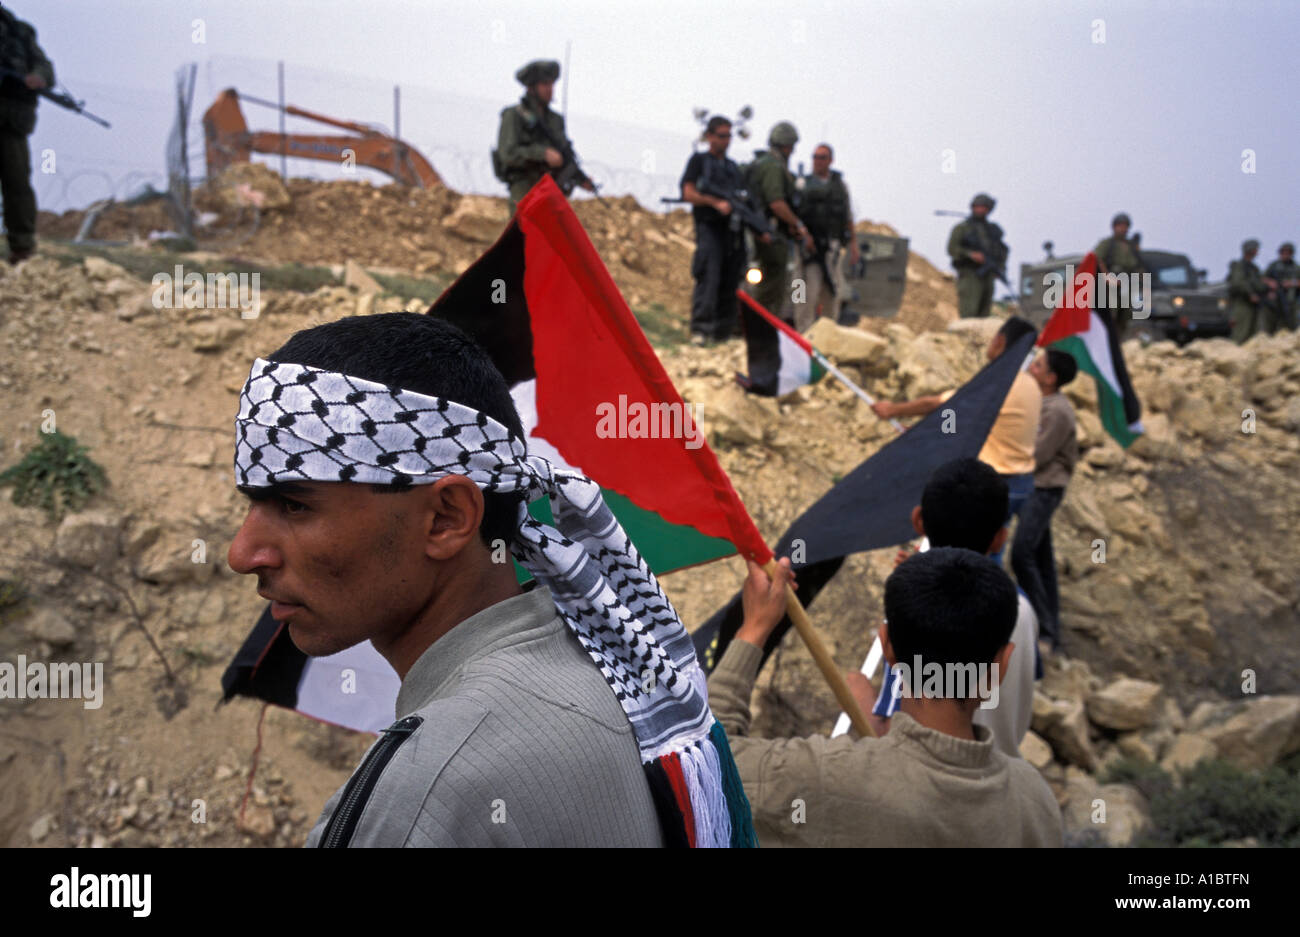 Palestinian protesting fence contsruction, Abu Dis. - Stock Image